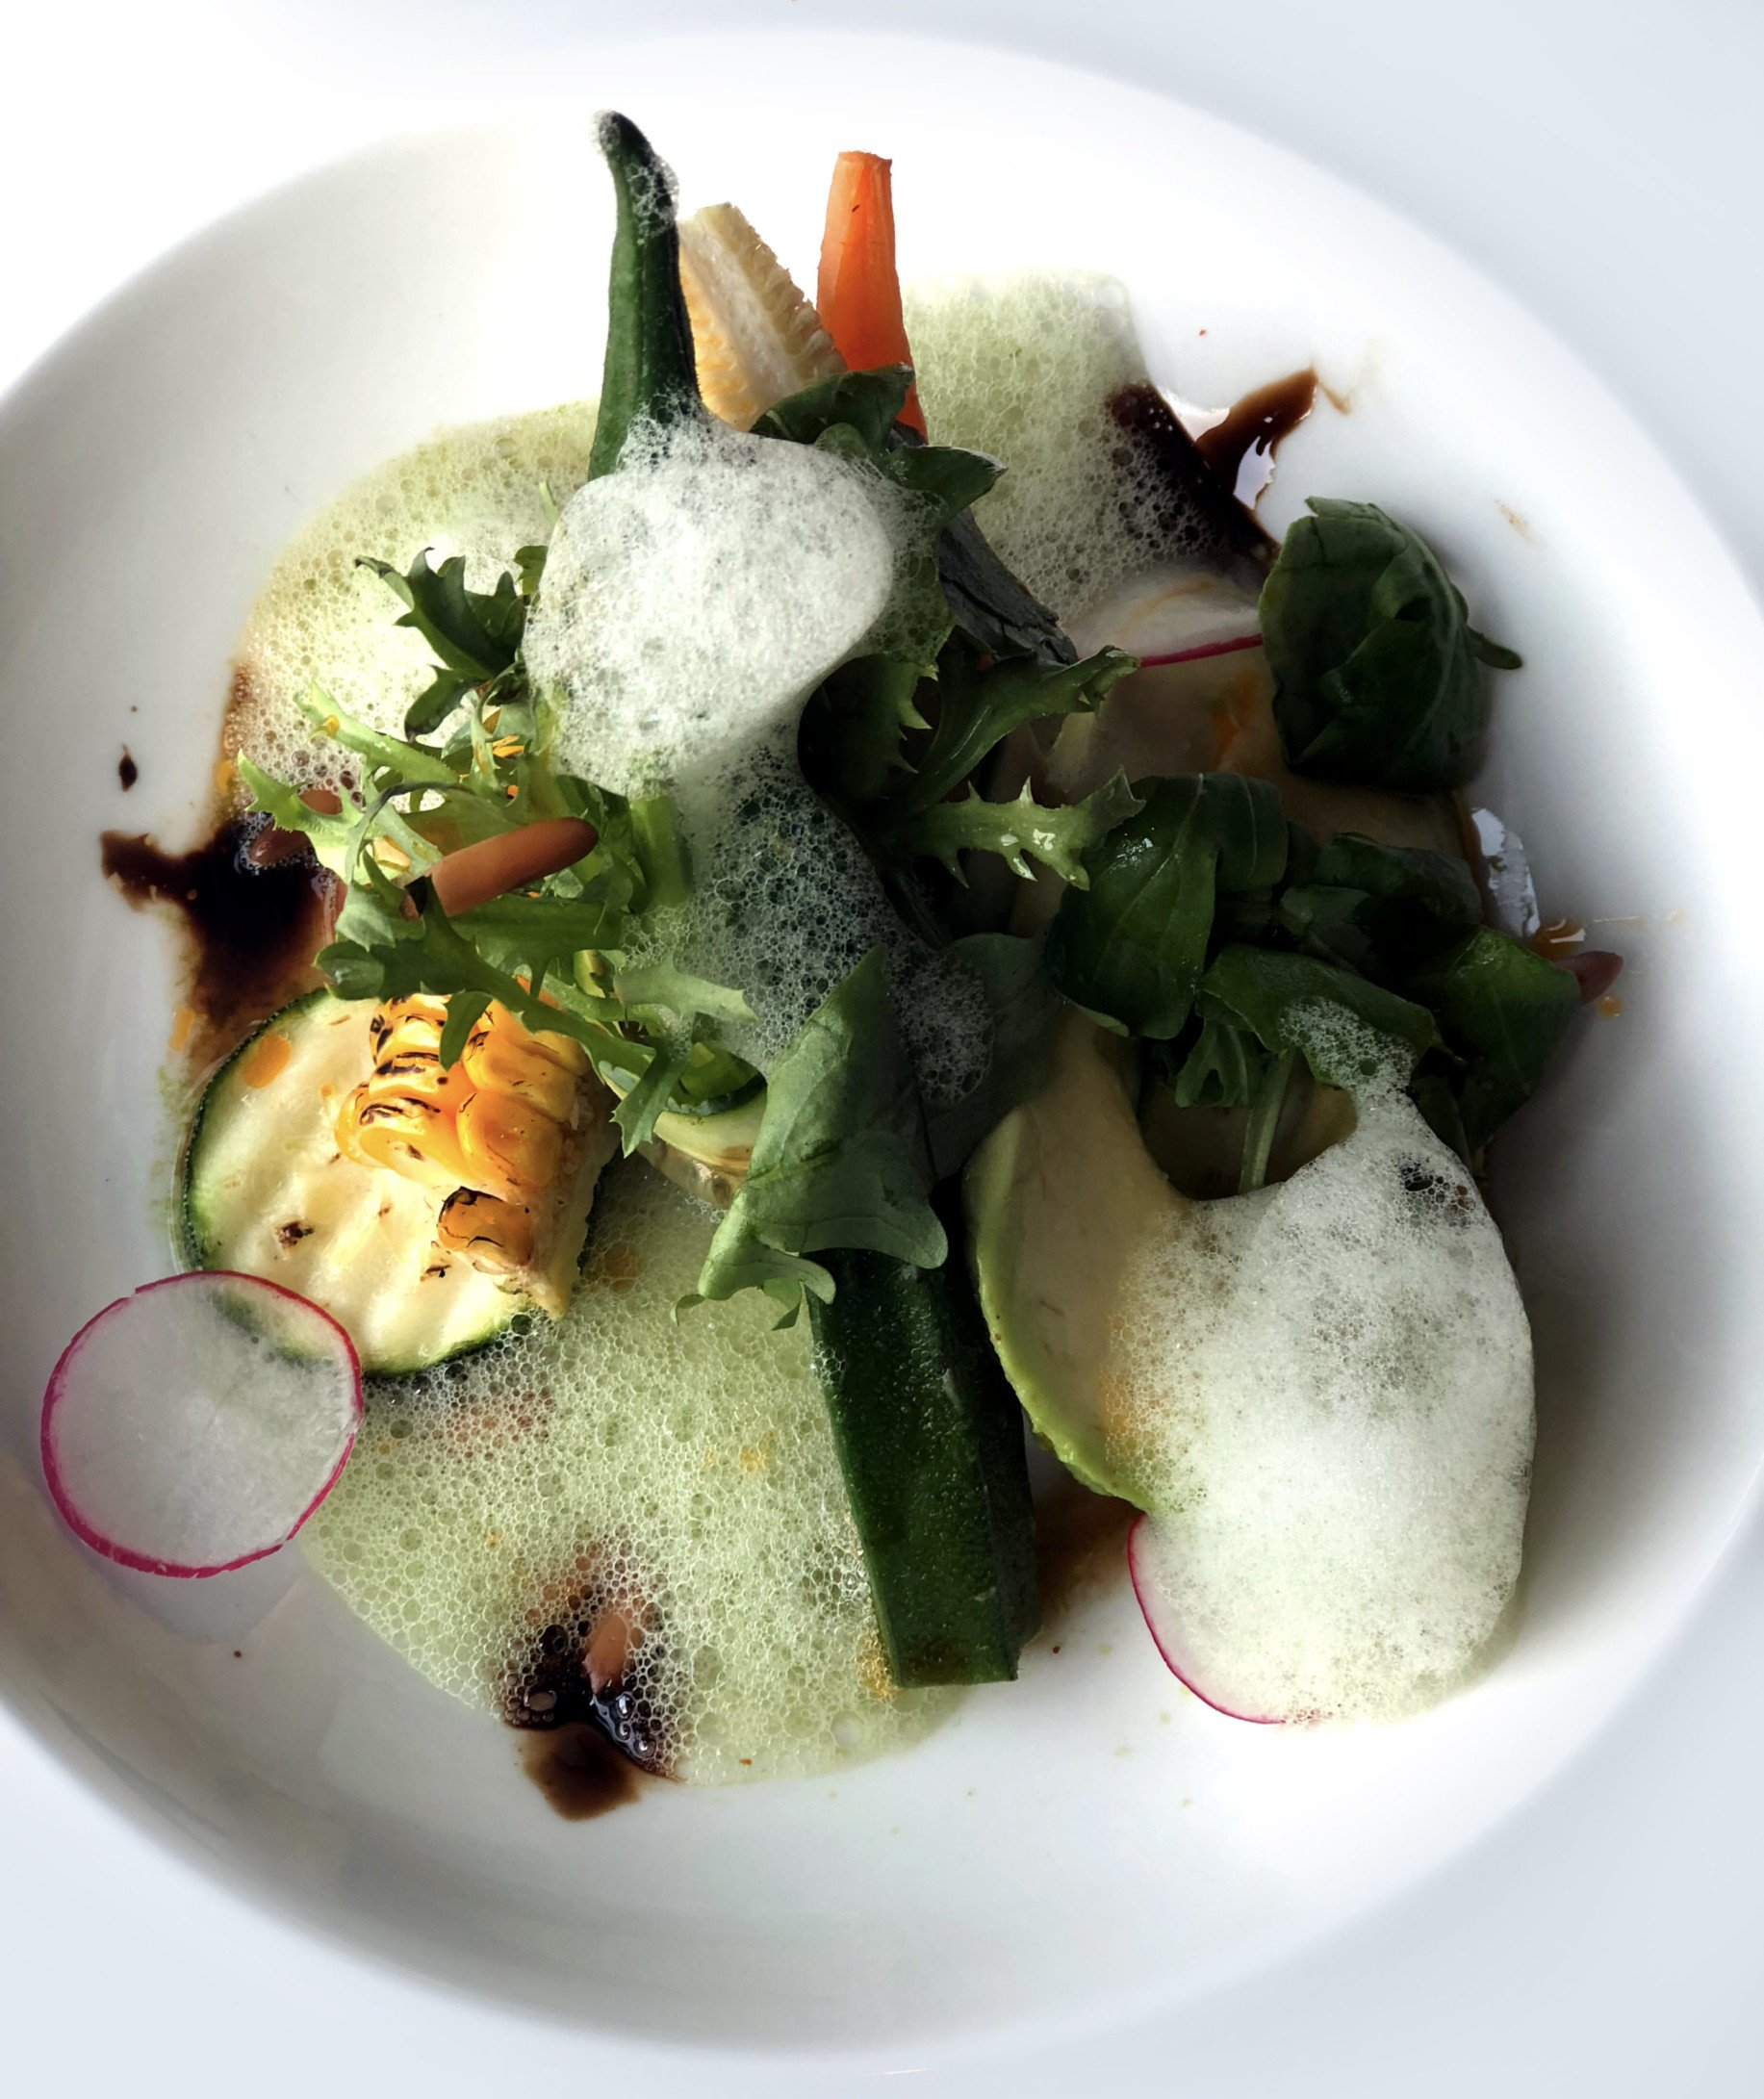 Yuuka Presents Chef Ting Yen with New Additions